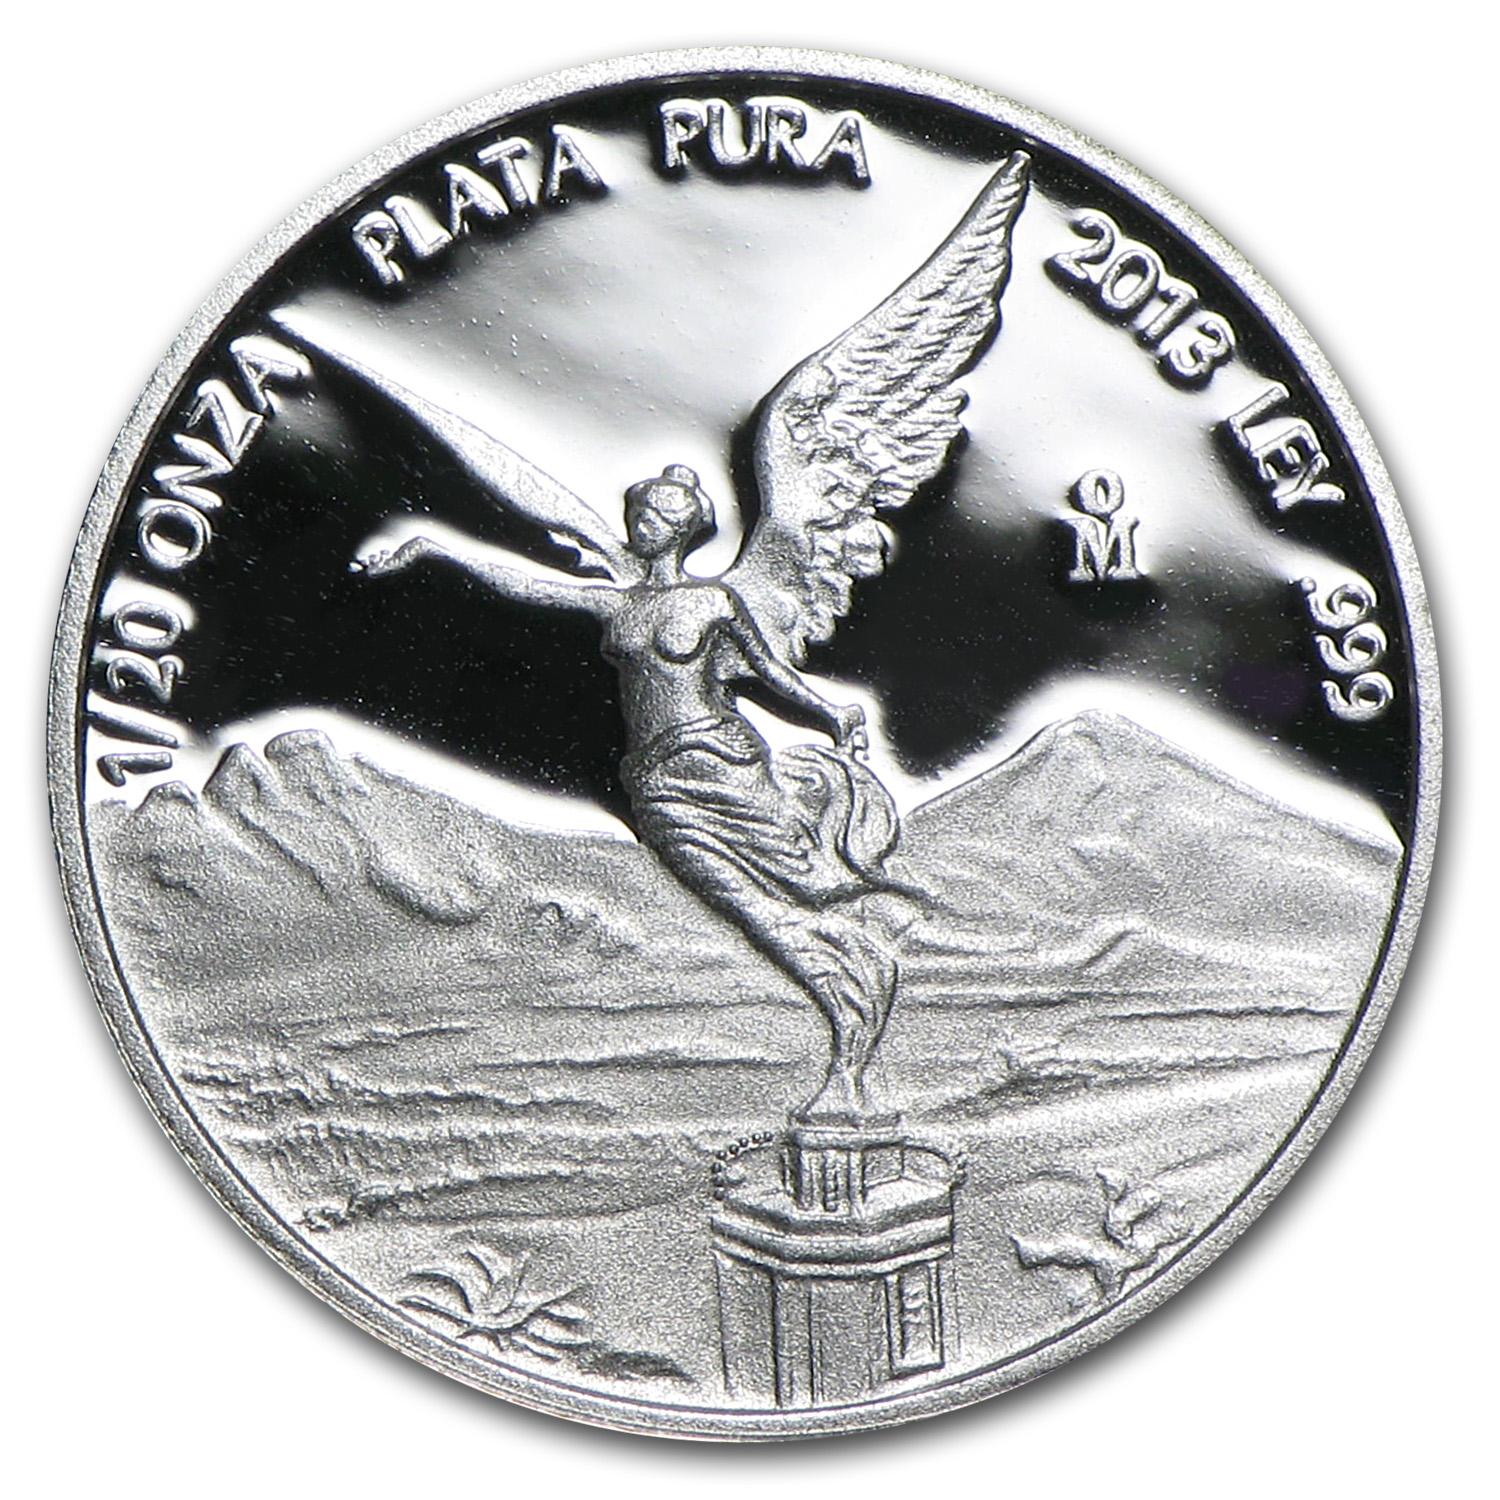 2013 Mexico 1/20 oz Silver Libertad Proof (In Capsule)